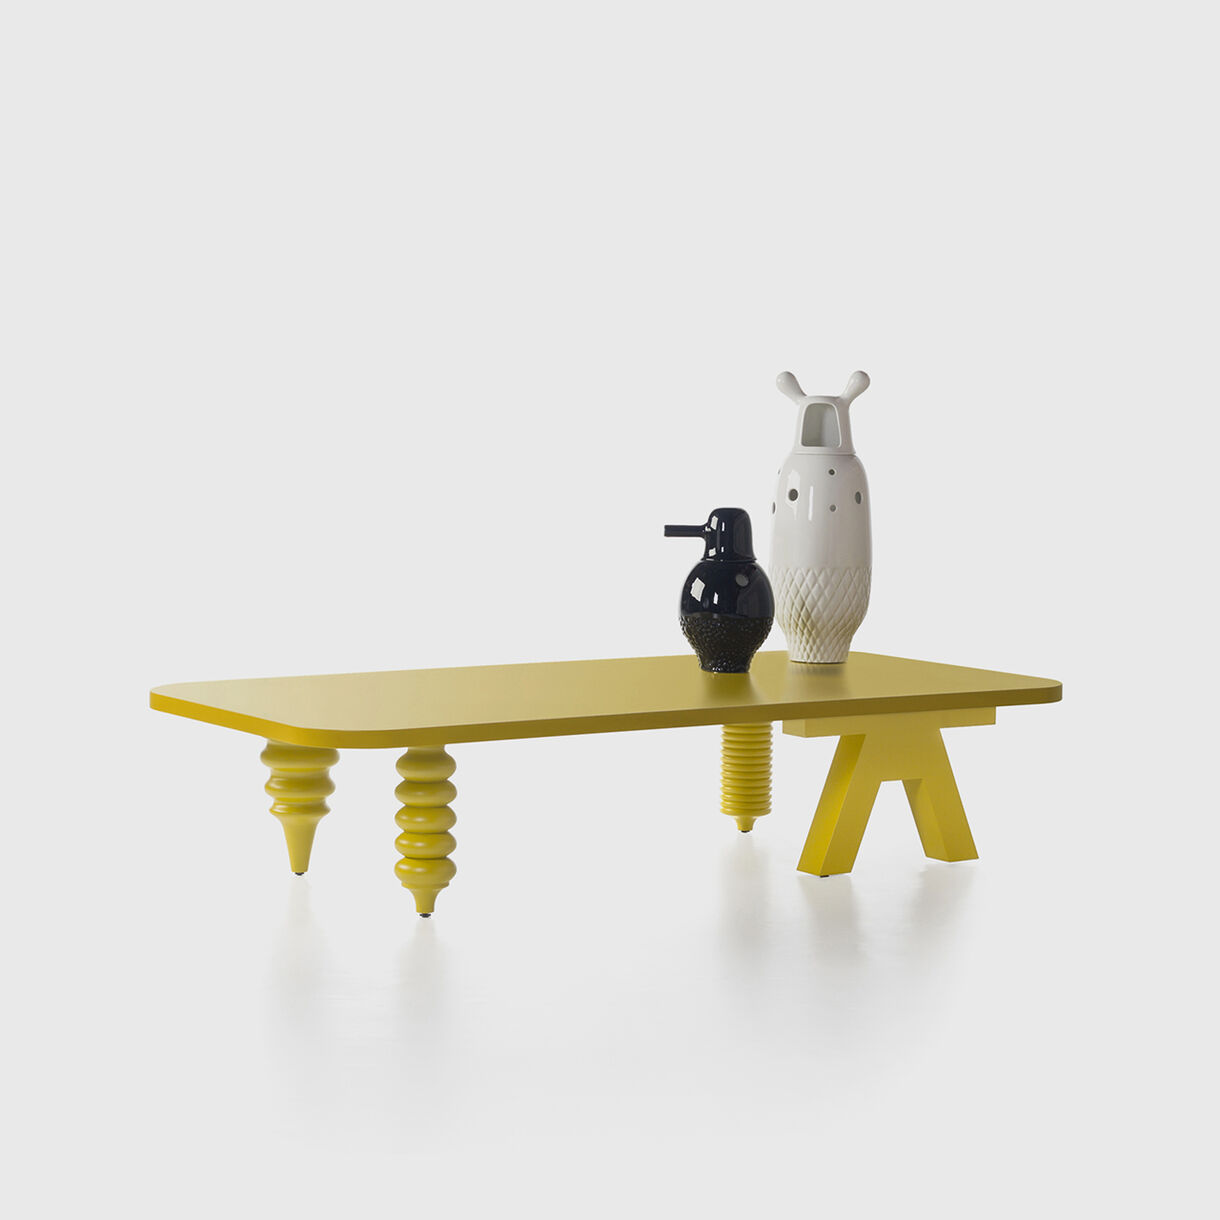 Showtime Multileg Low Table, Laminate, with Vases